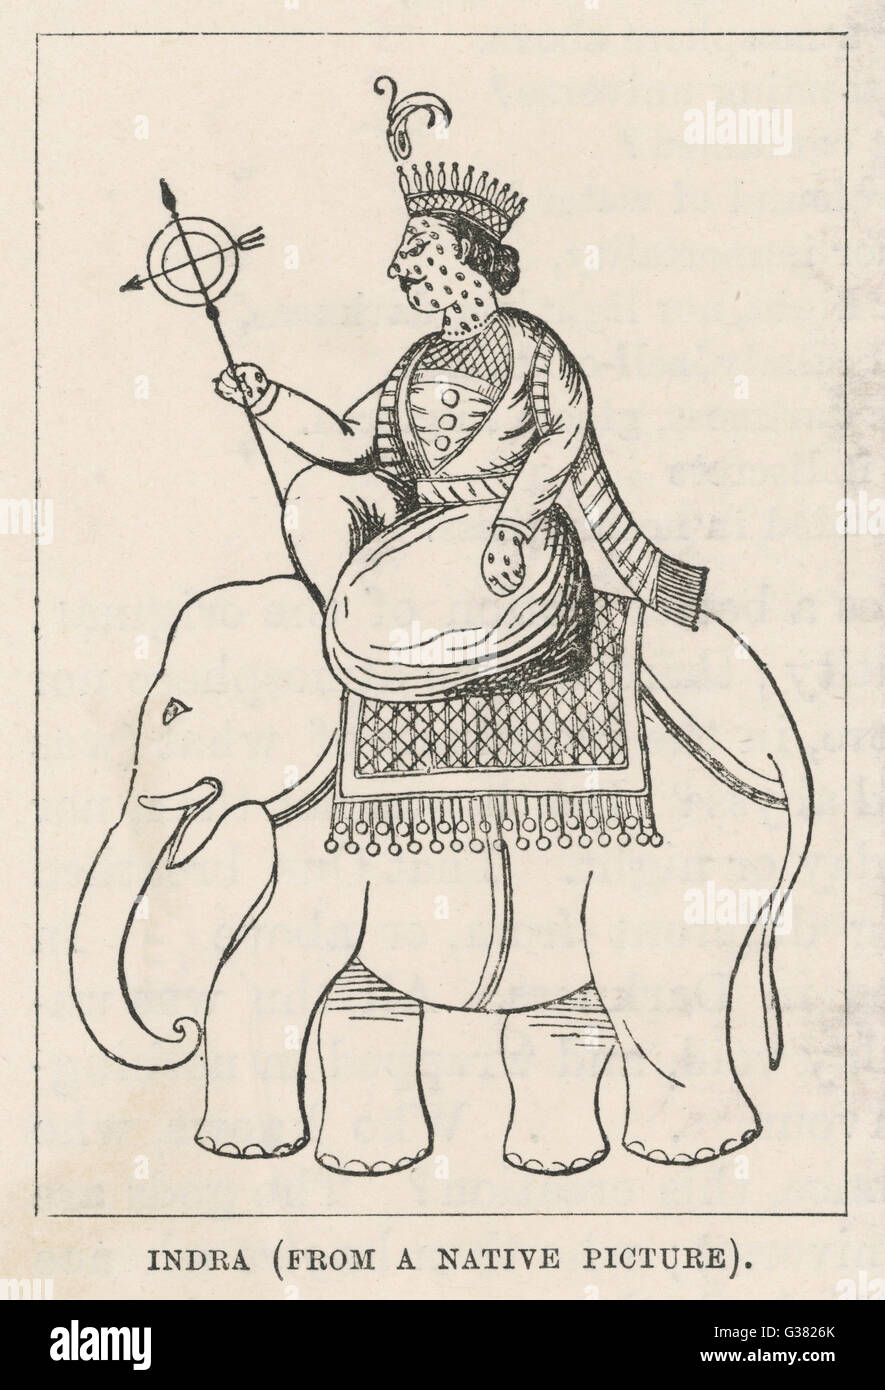 Indra, King of the hindu gods  in an early collection of  hymns, the Rig Veda.  He had  authority over the sky ; - Stock Image